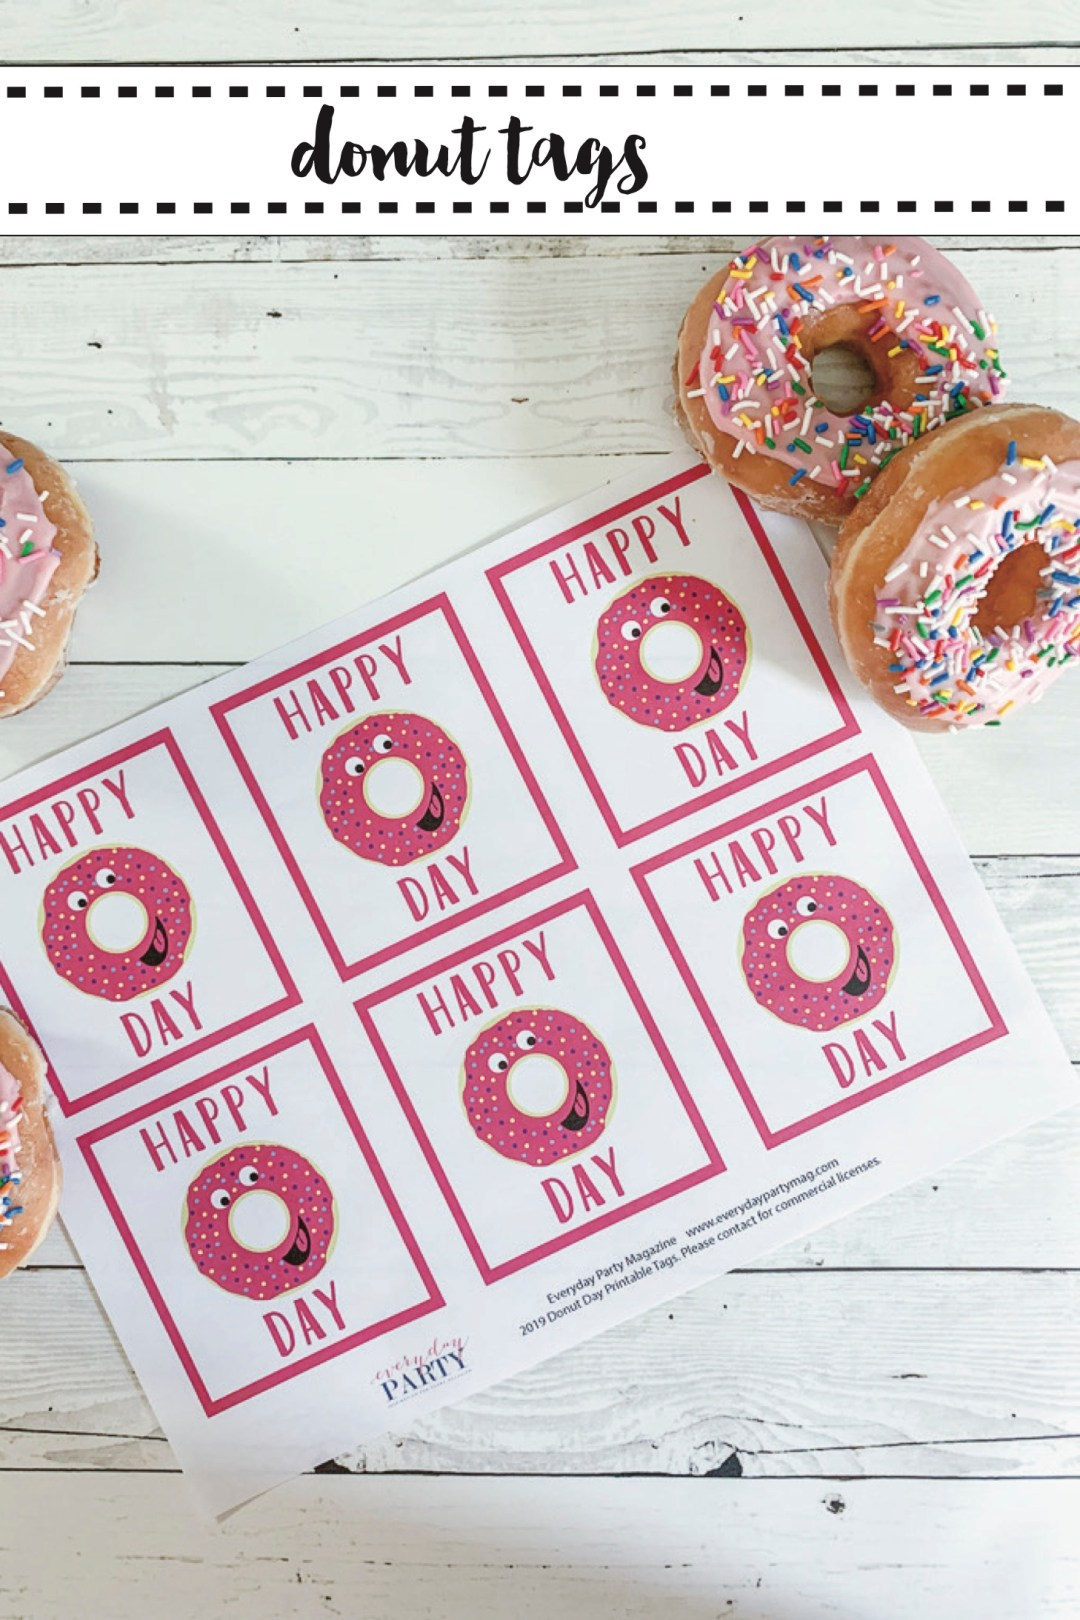 Free Printable Donut Day Tags